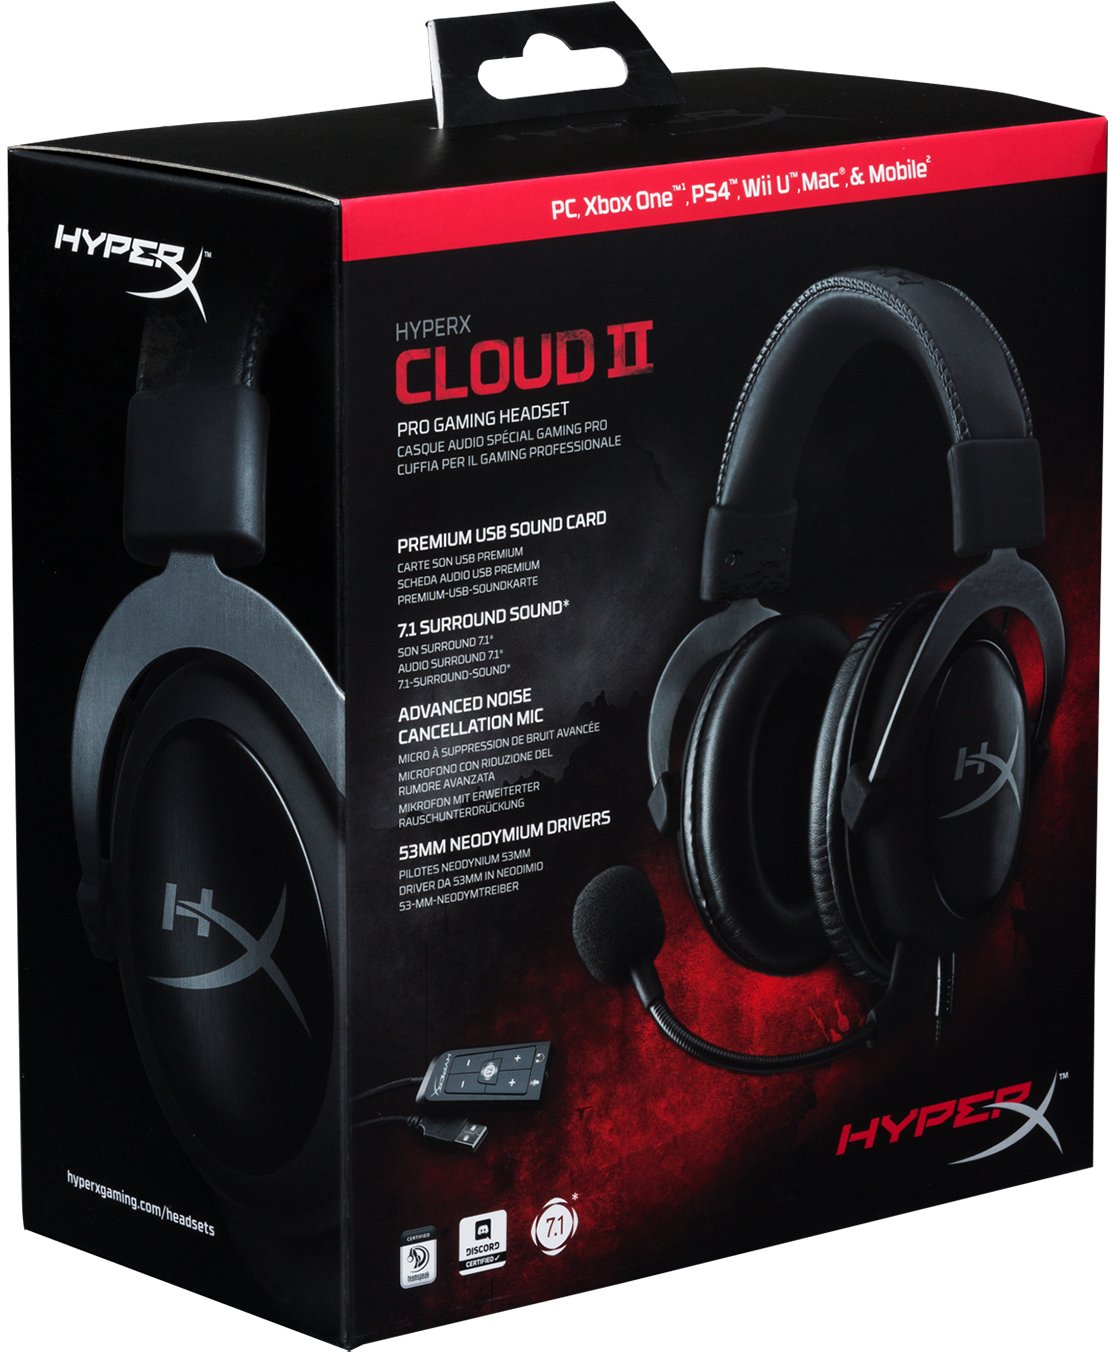 947b48ed7b6 Amazon.com: HyperX Cloud II Gaming Headset - 7.1 Surround Sound - Memory  Foam Ear Pads - Durable Aluminum Frame - Works with PC, PS4, PS4 PRO, Xbox  One, ...